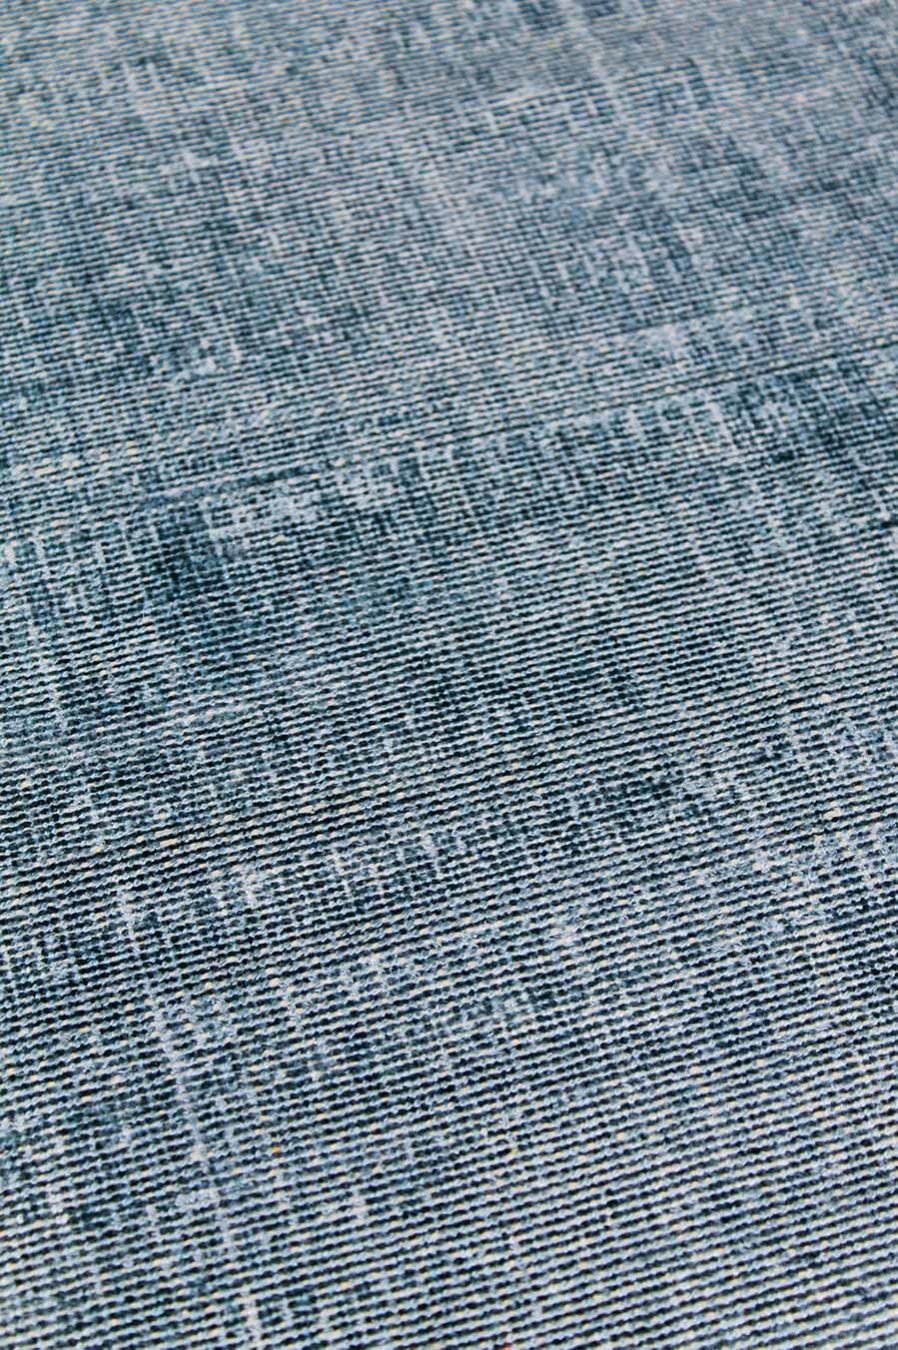 Close up view of textured Rapture rug in teal blue colour